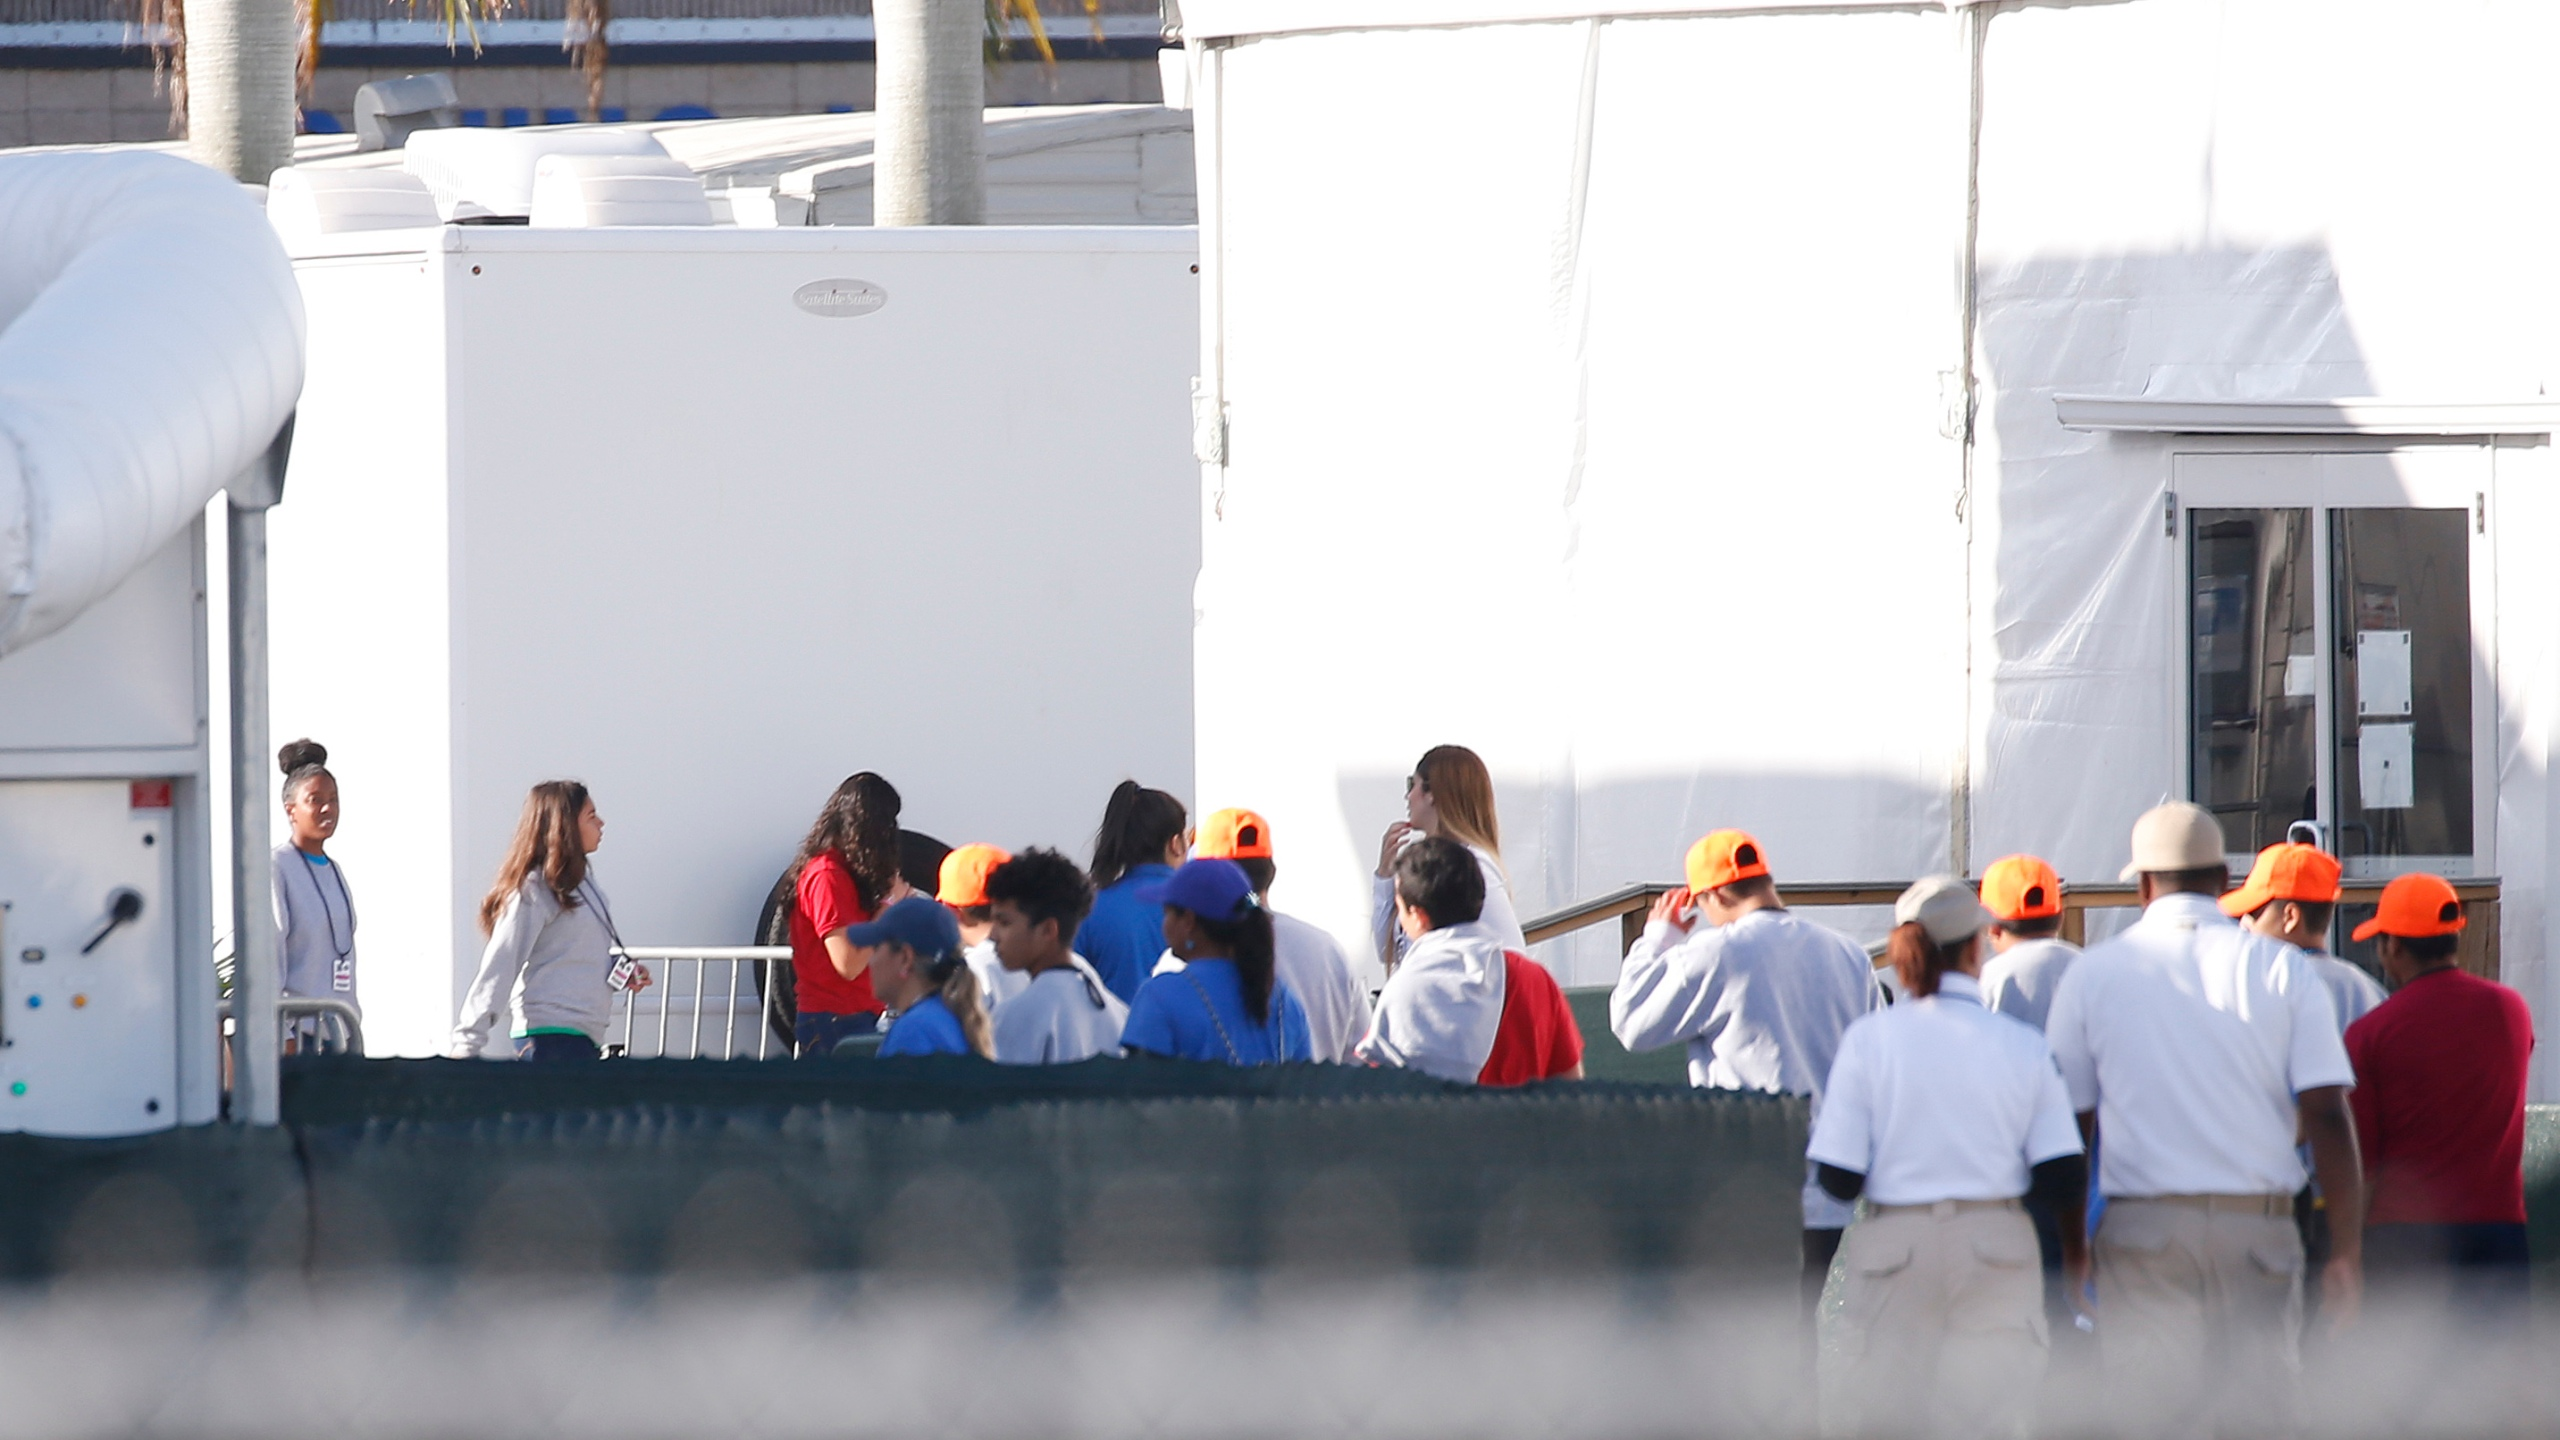 Migrant children who have been separated from their families can be seen in tents at a detention center in Homestead, Florida on June 28, 2019. (Credit: RHONA WISE/AFP/Getty Images)